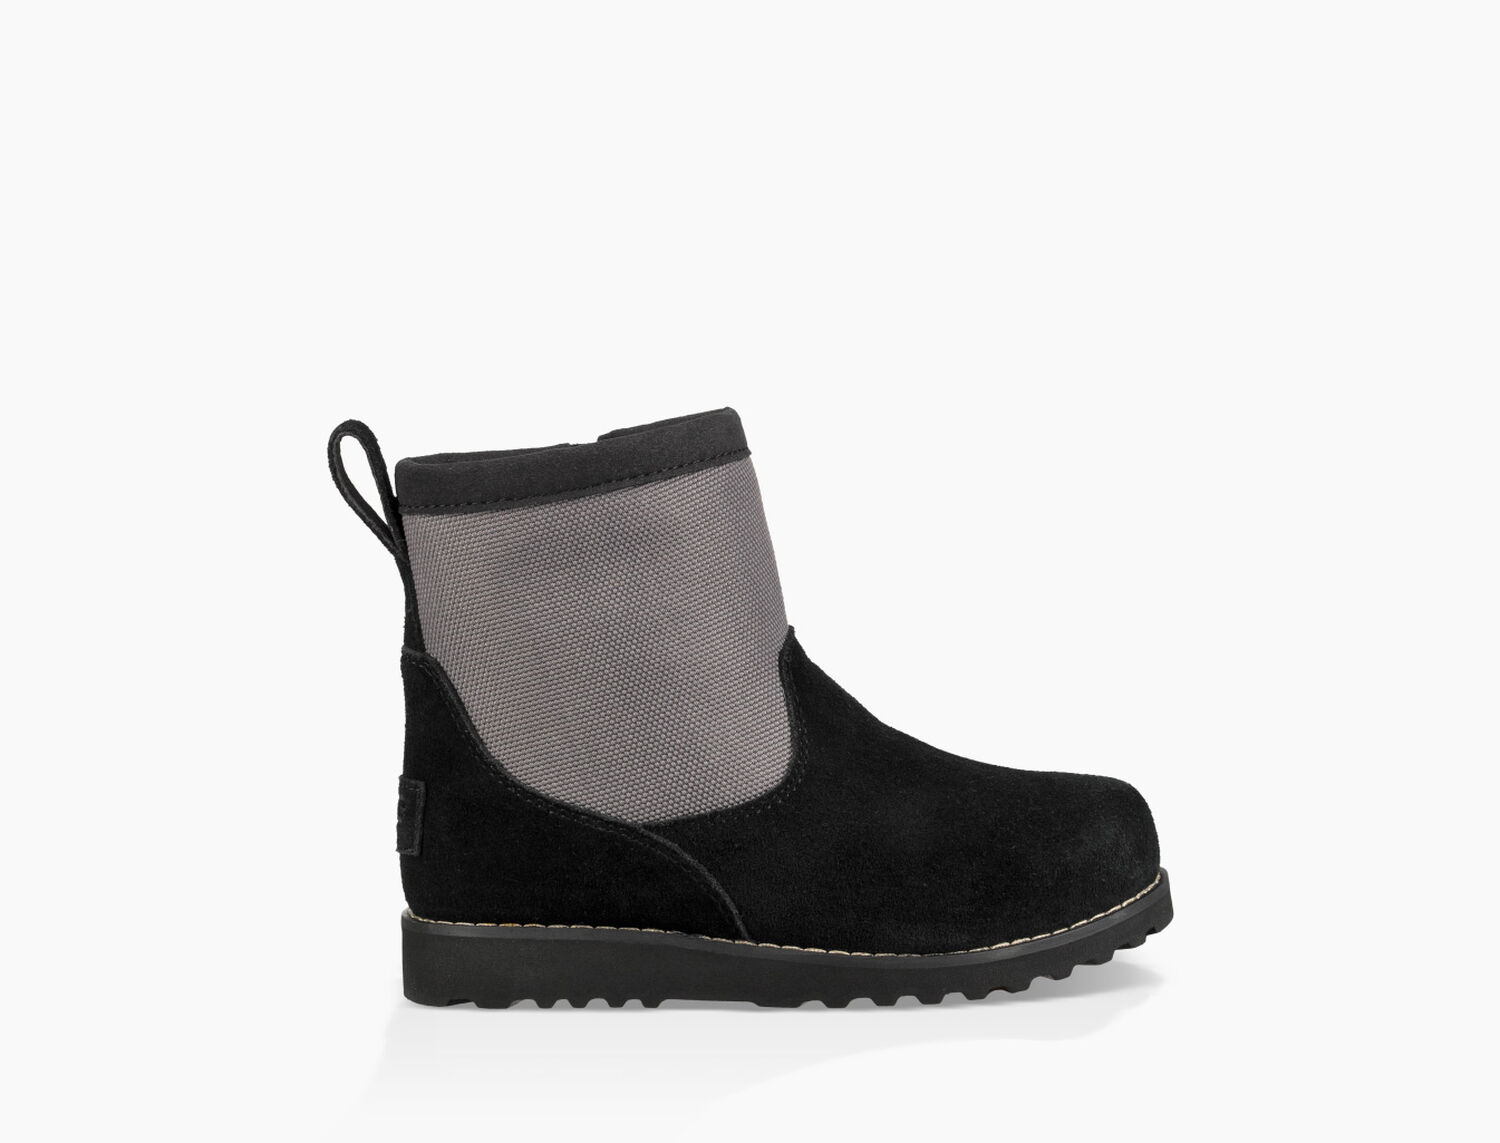 bf48f4fb1f2 Kids' Share this product Bayson II CWR Boot